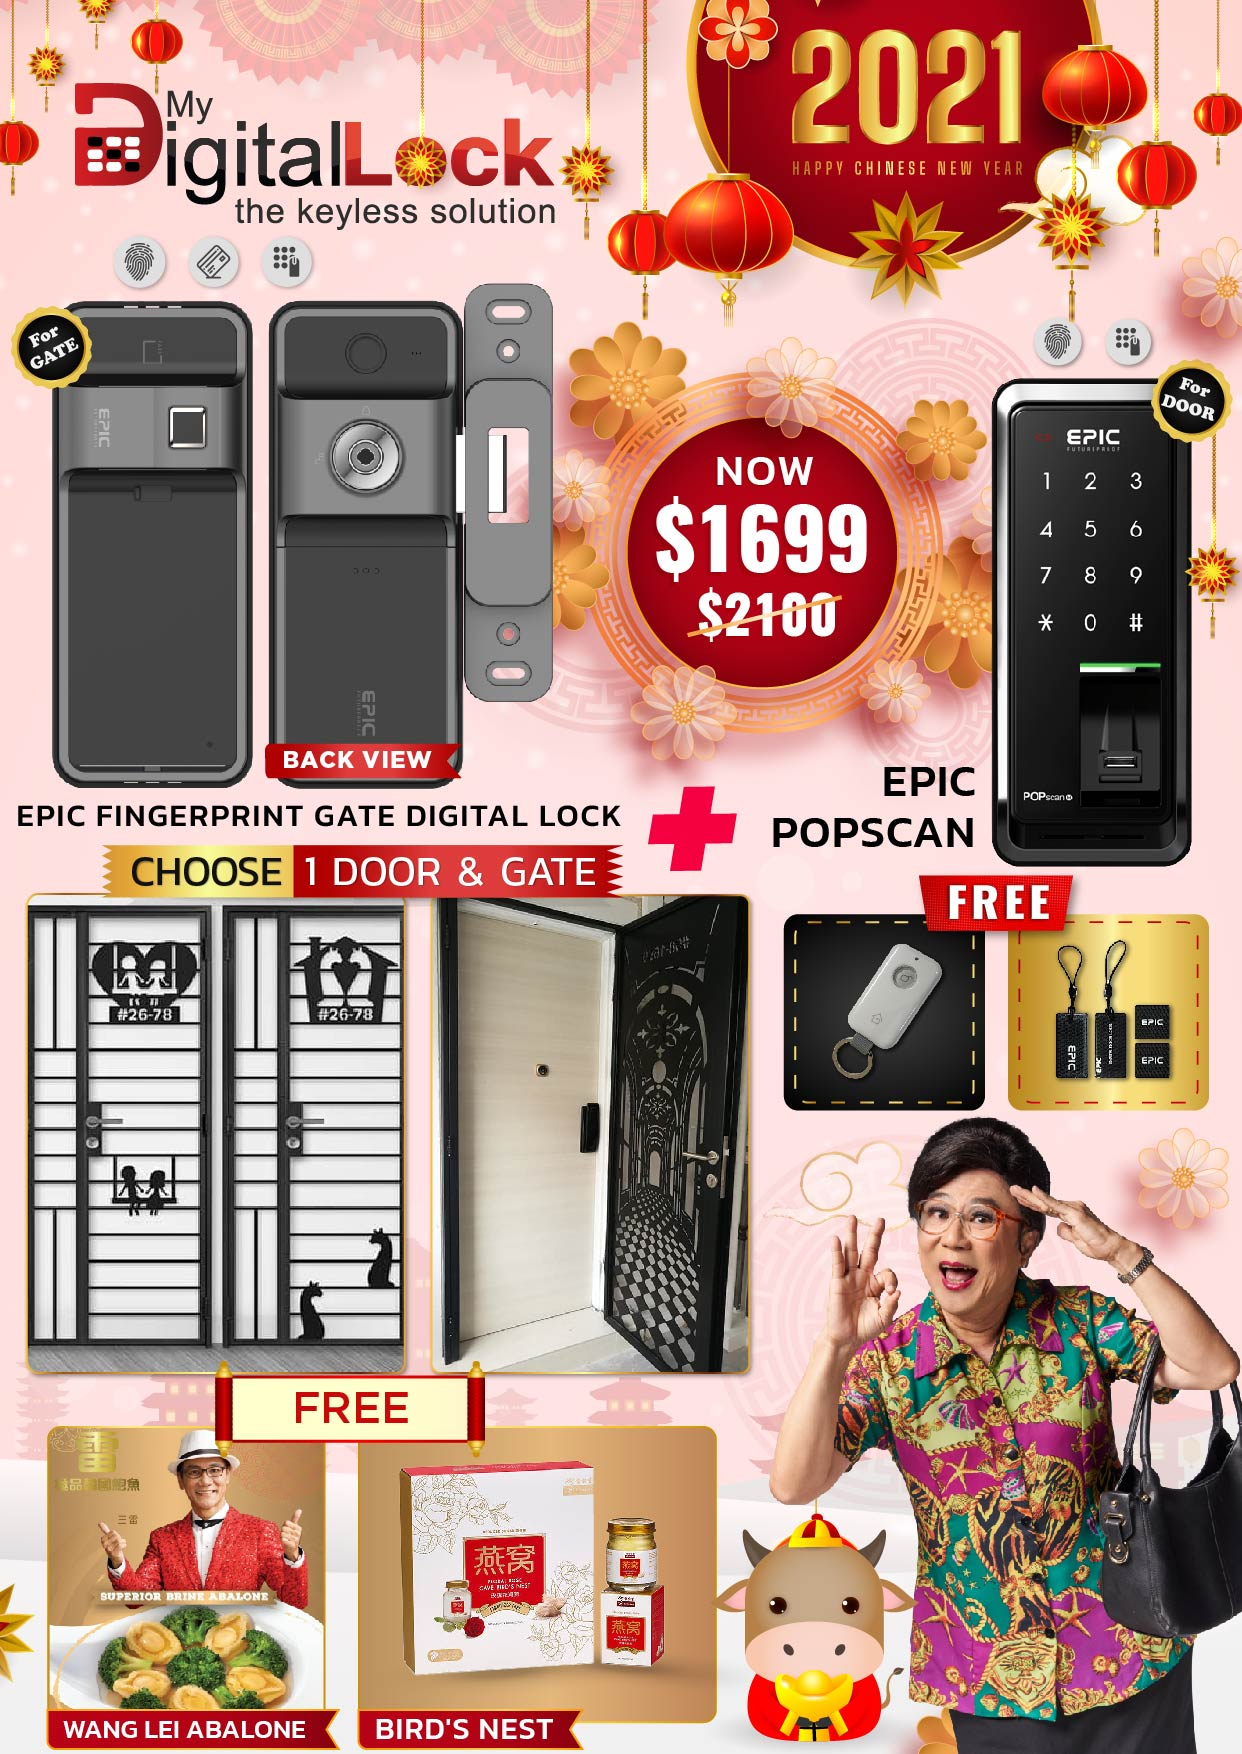 epic-fingerprint-chinese-newyear-promotions